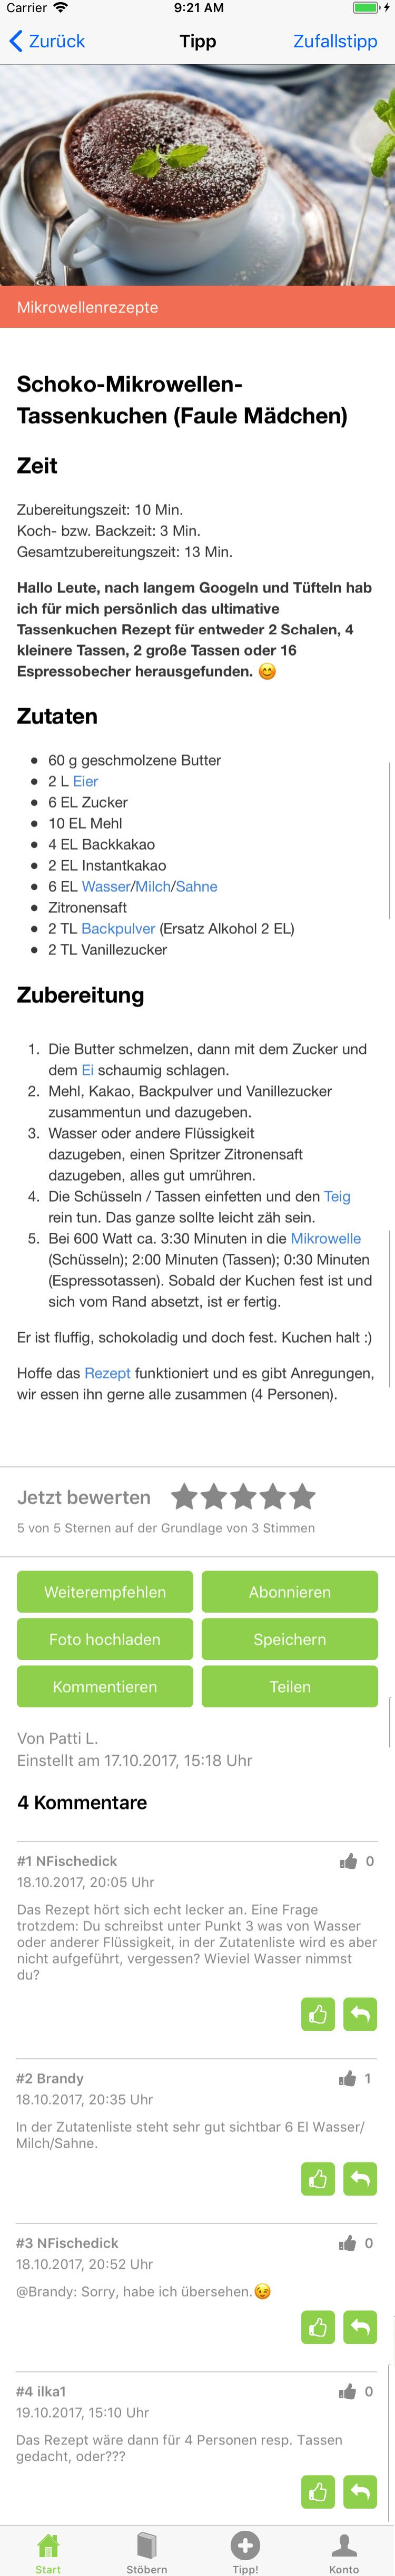 iPhone App Softwareentwicklung Ulm 7